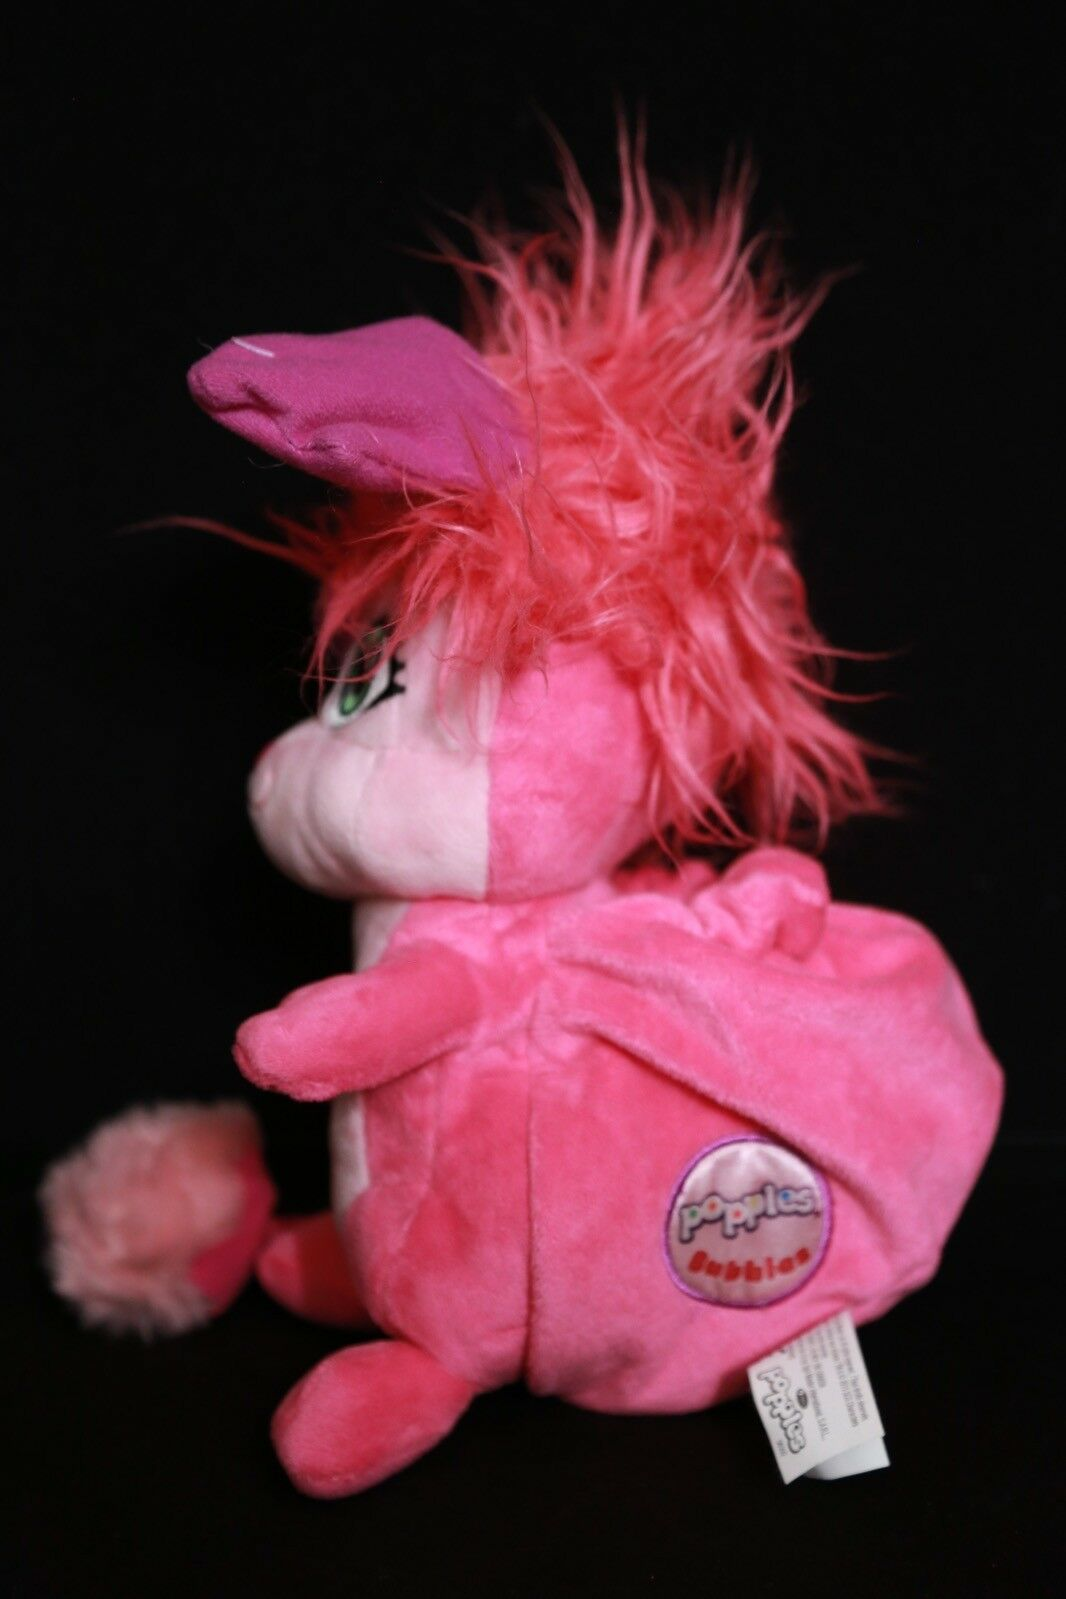 Popples BUBBLES Pink Plush Plush Plush Toy Doll w  Sound 4167db